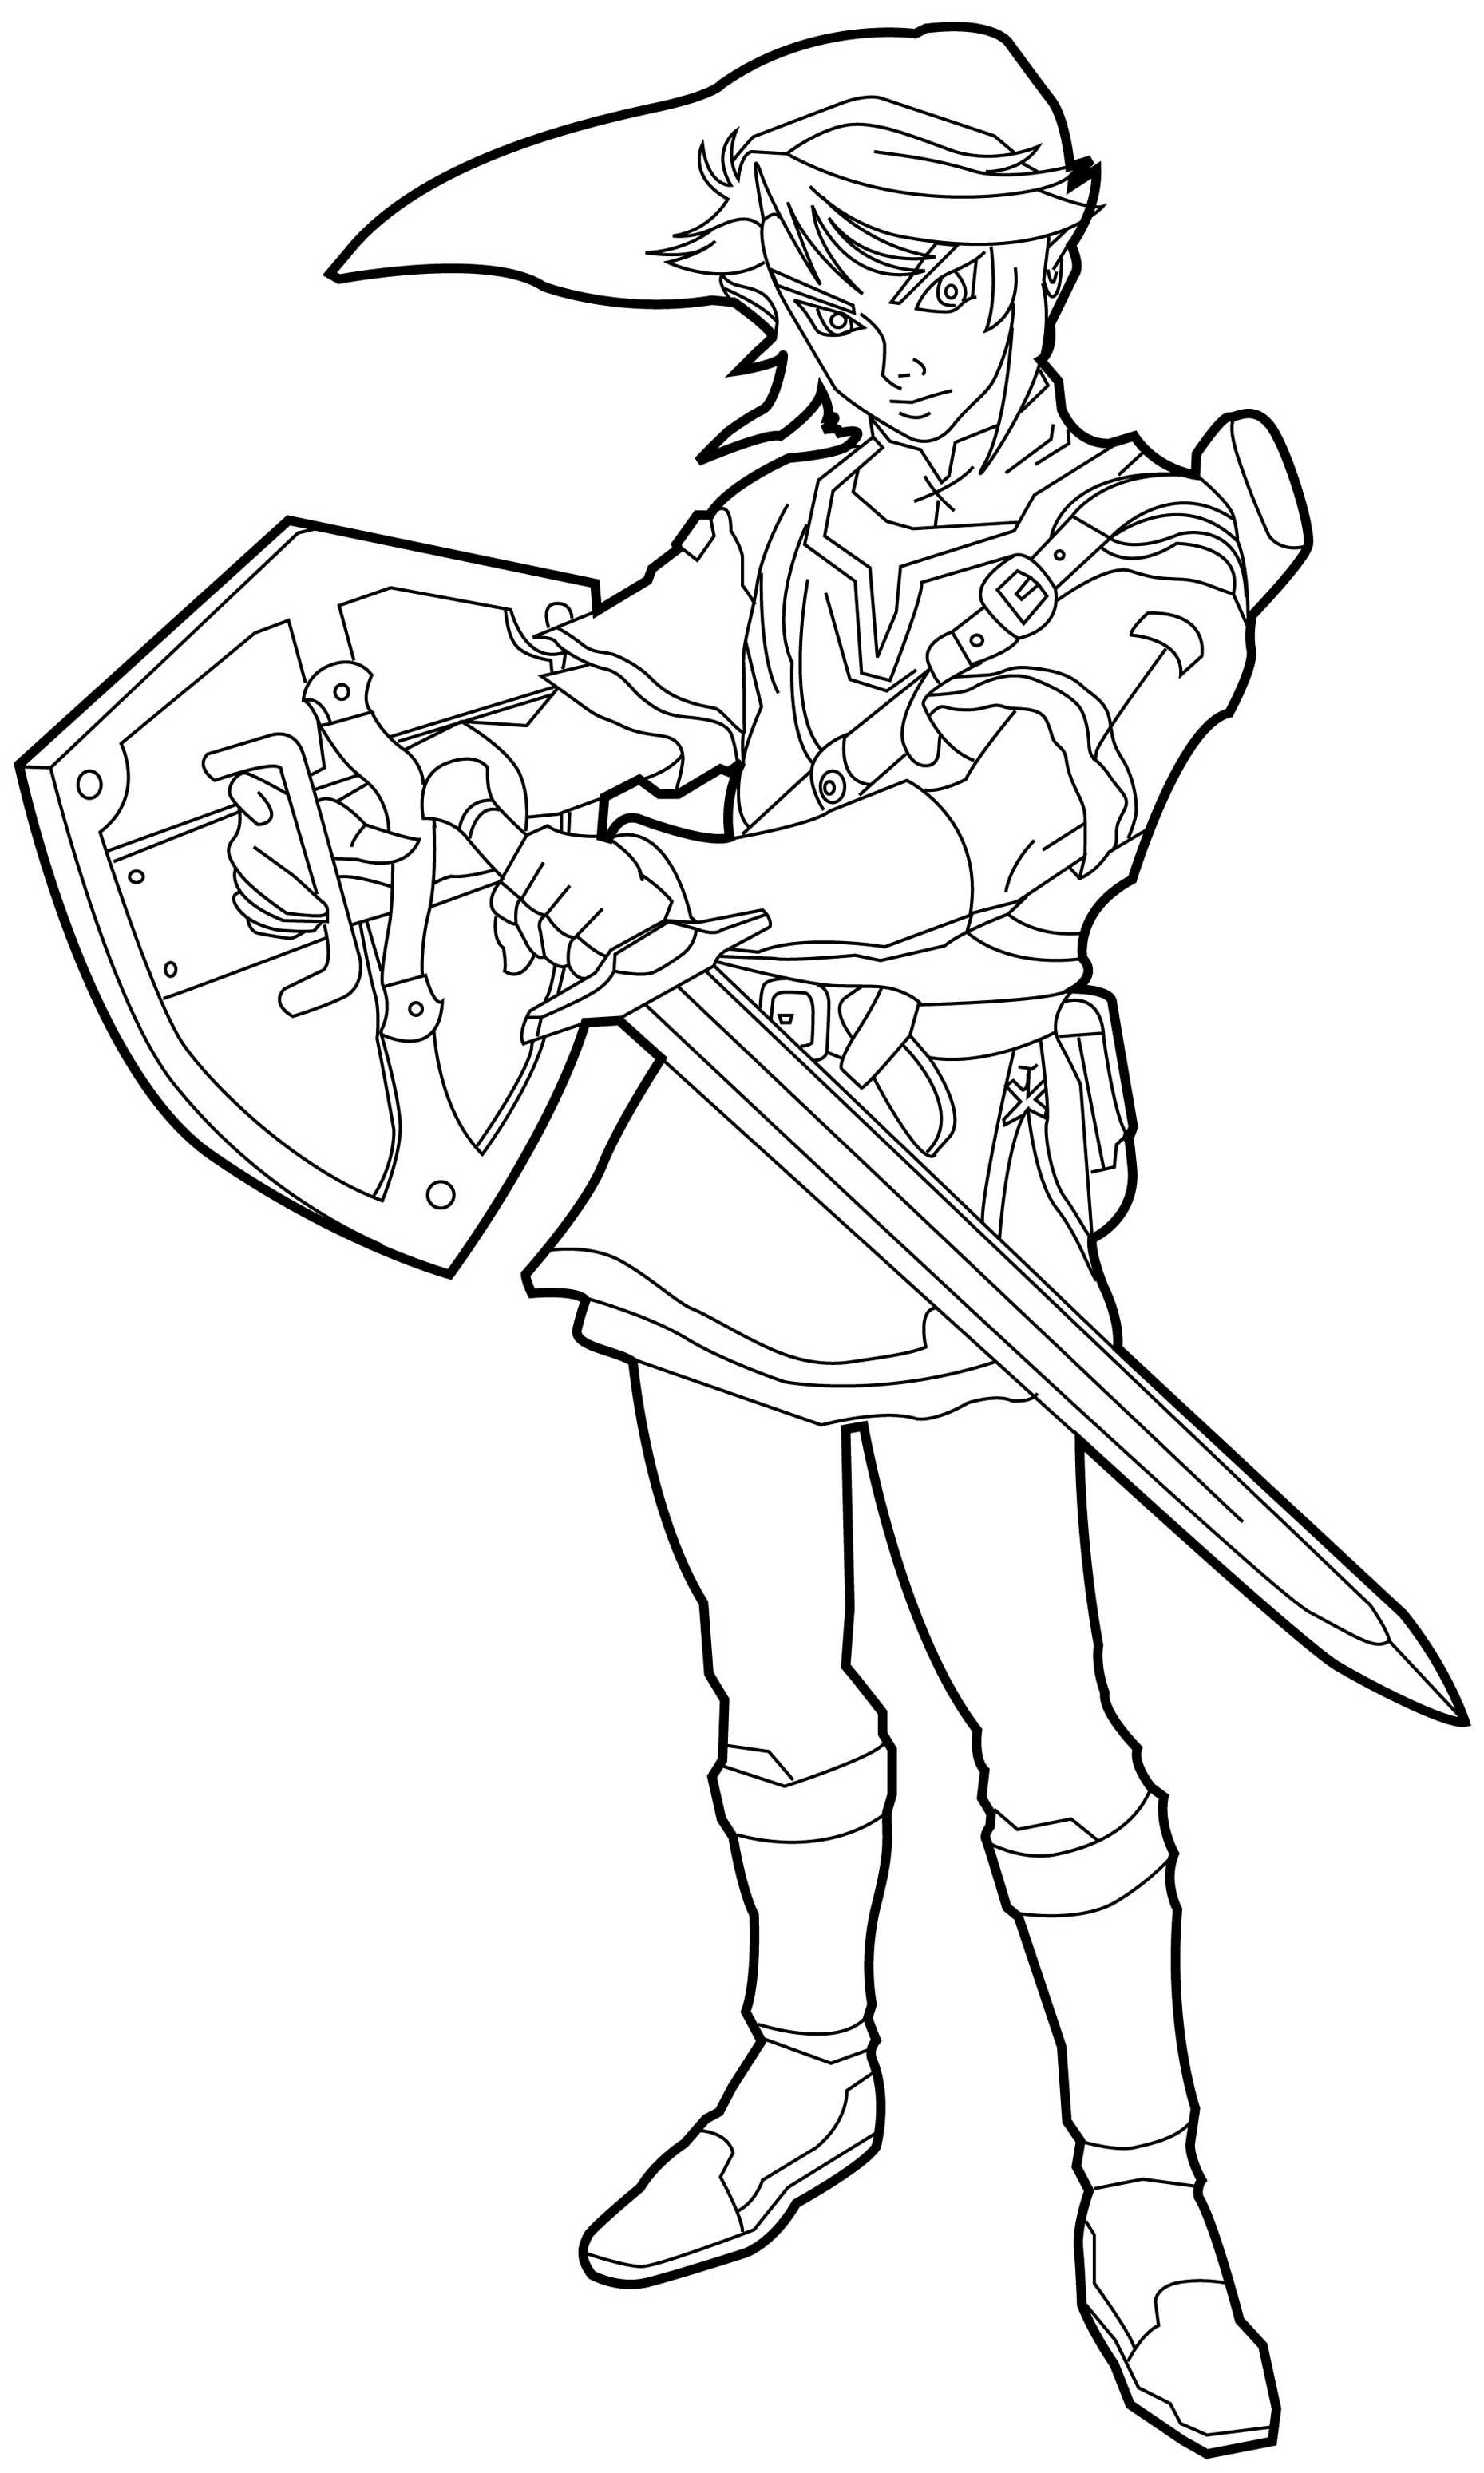 Free Zelda Coloring Pages Coloring pages for kids